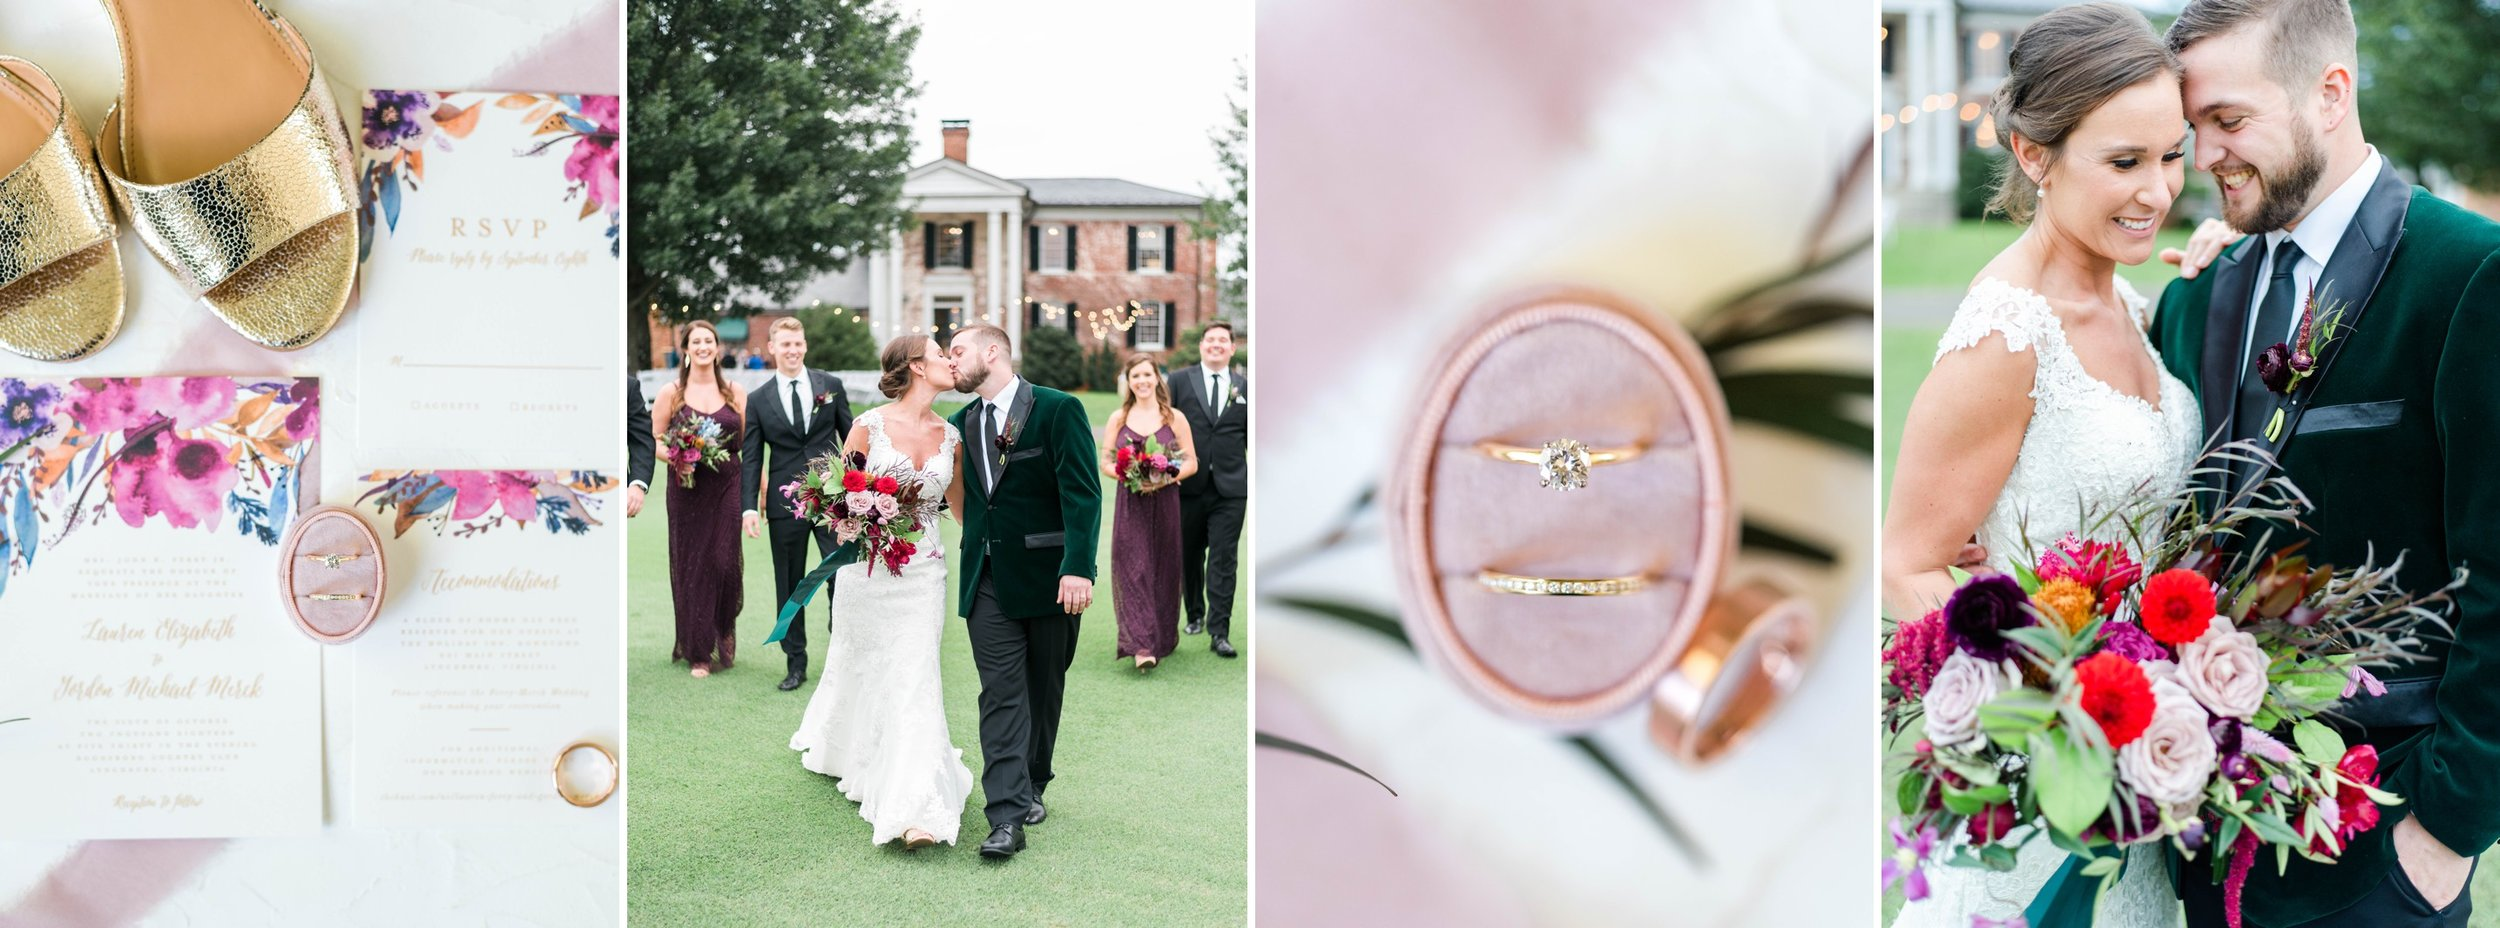 Gordan+Lauren_BoonsboroCountryClubWedding_Virginiaweddingphotographer_LynchburgVi 8.jpg